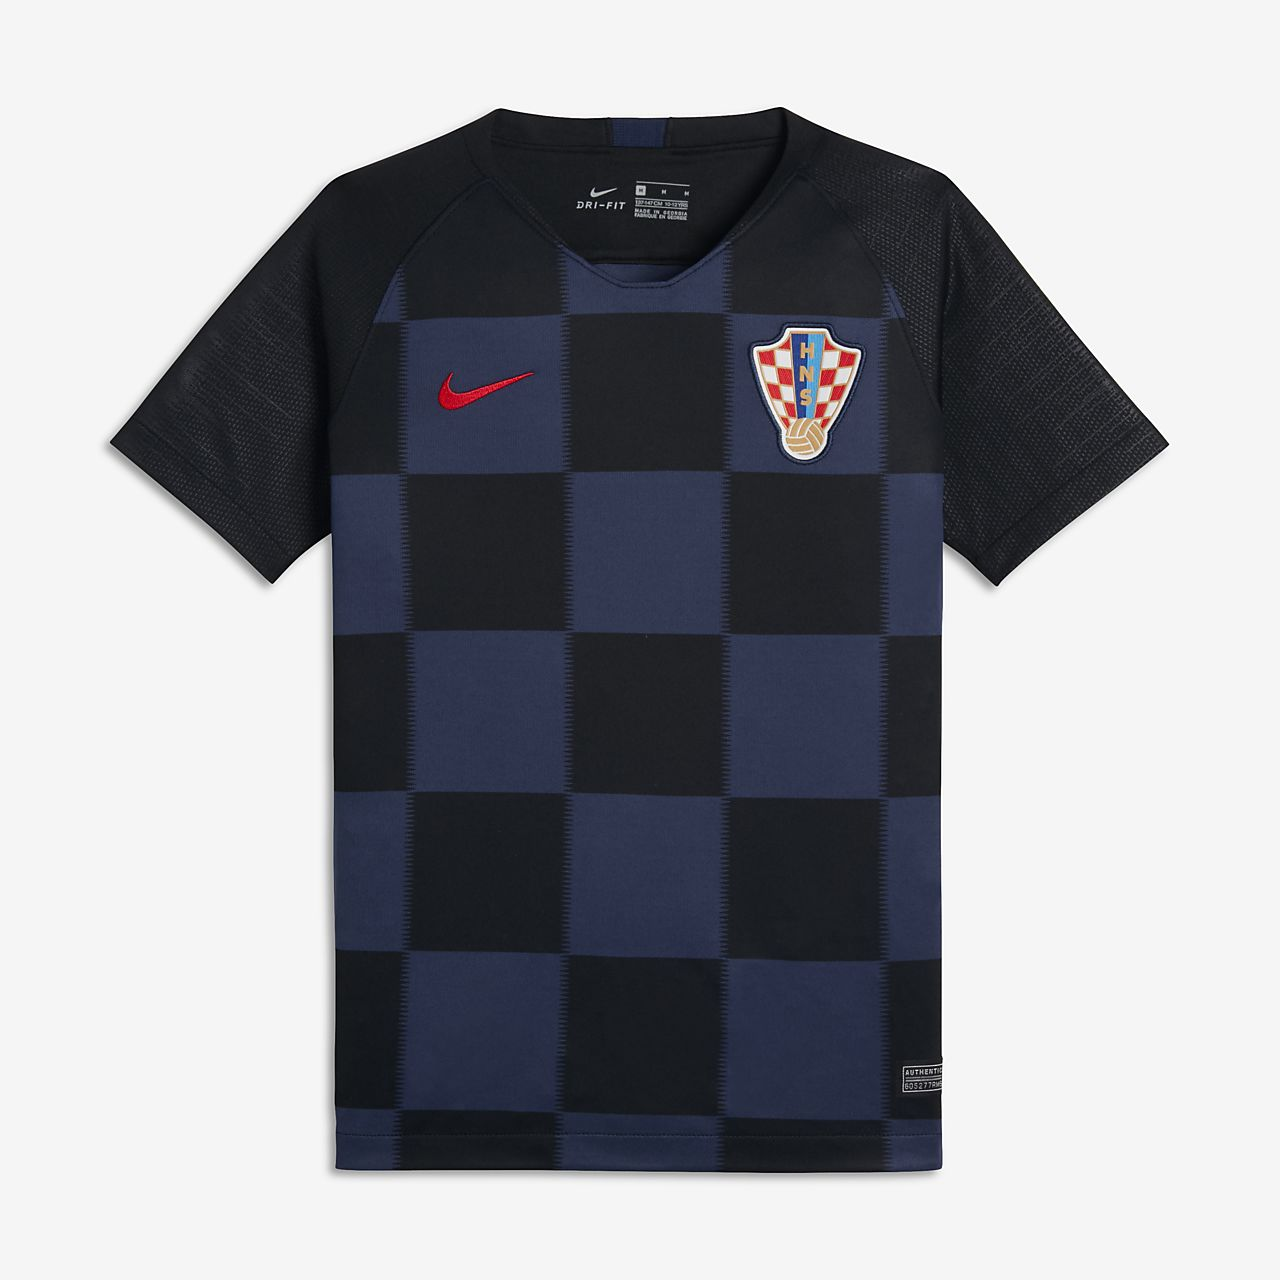 2018 Croatia Stadium Away Older Kids' Football Shirt